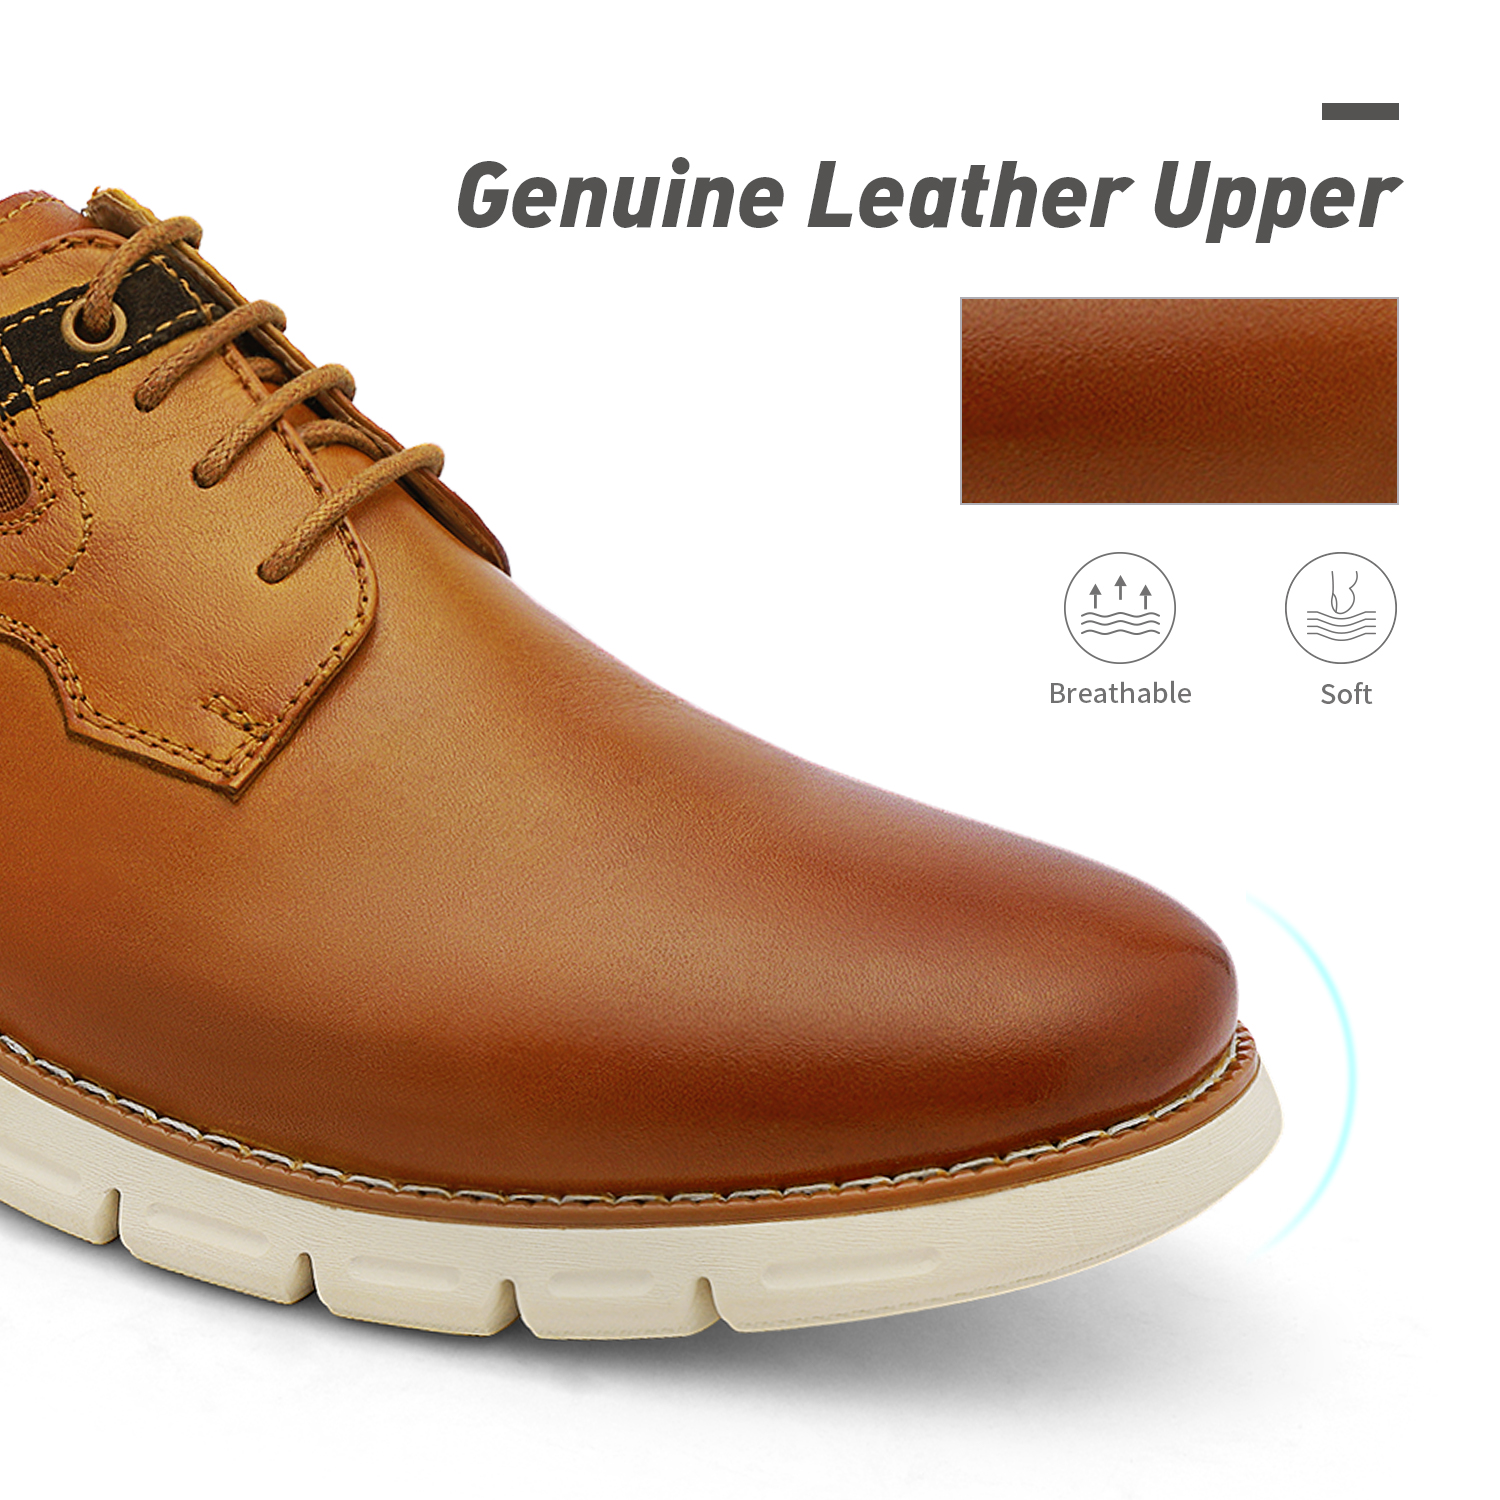 Men-s-Genuine-Leather-Casual-Formal-Sneakers-Lace-up-Business-Oxford-Dress-Shoes thumbnail 43